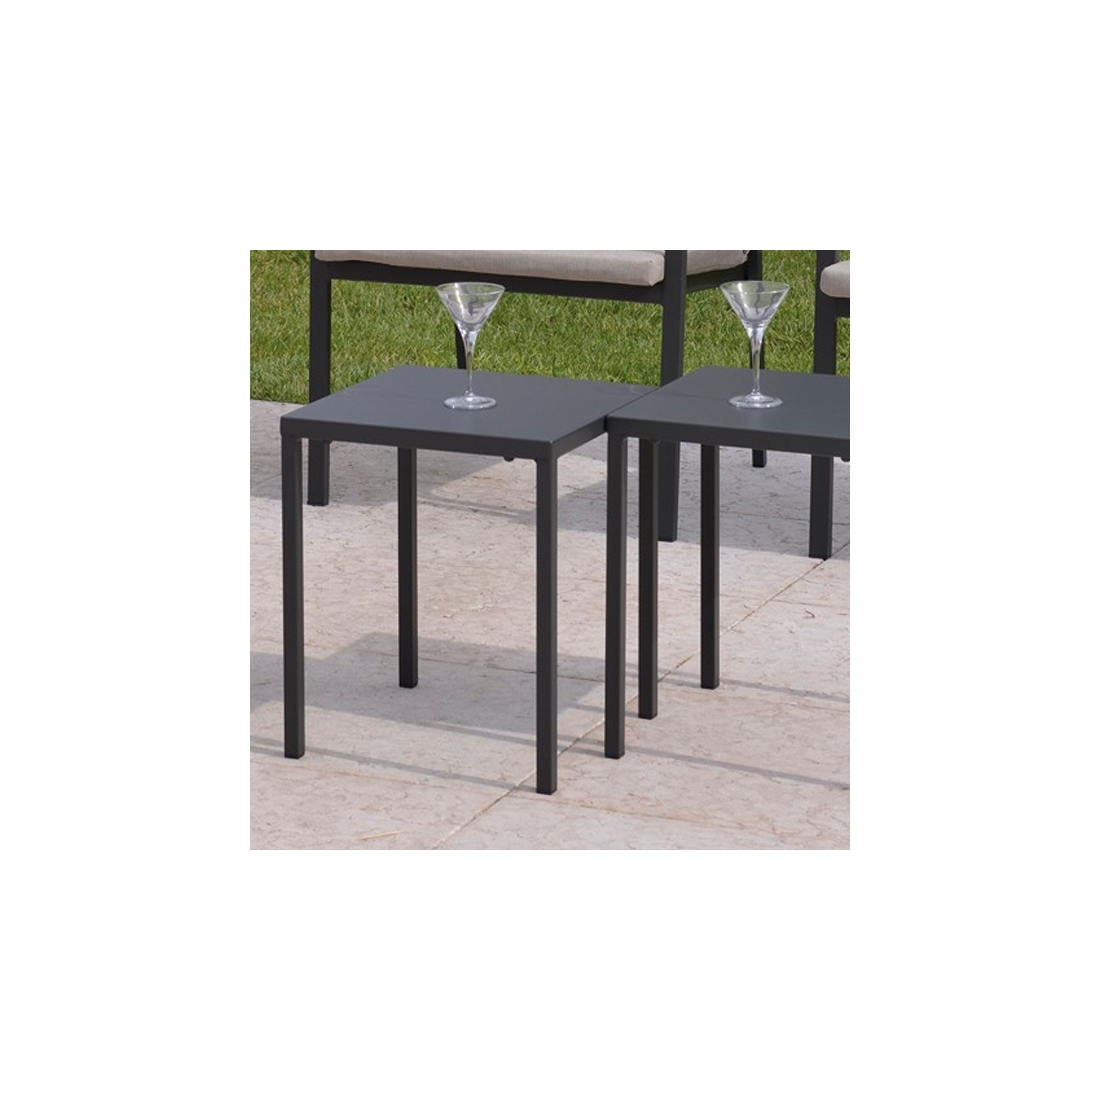 Petite table basse de jardin rd italia zendart design for Petit table de jardin